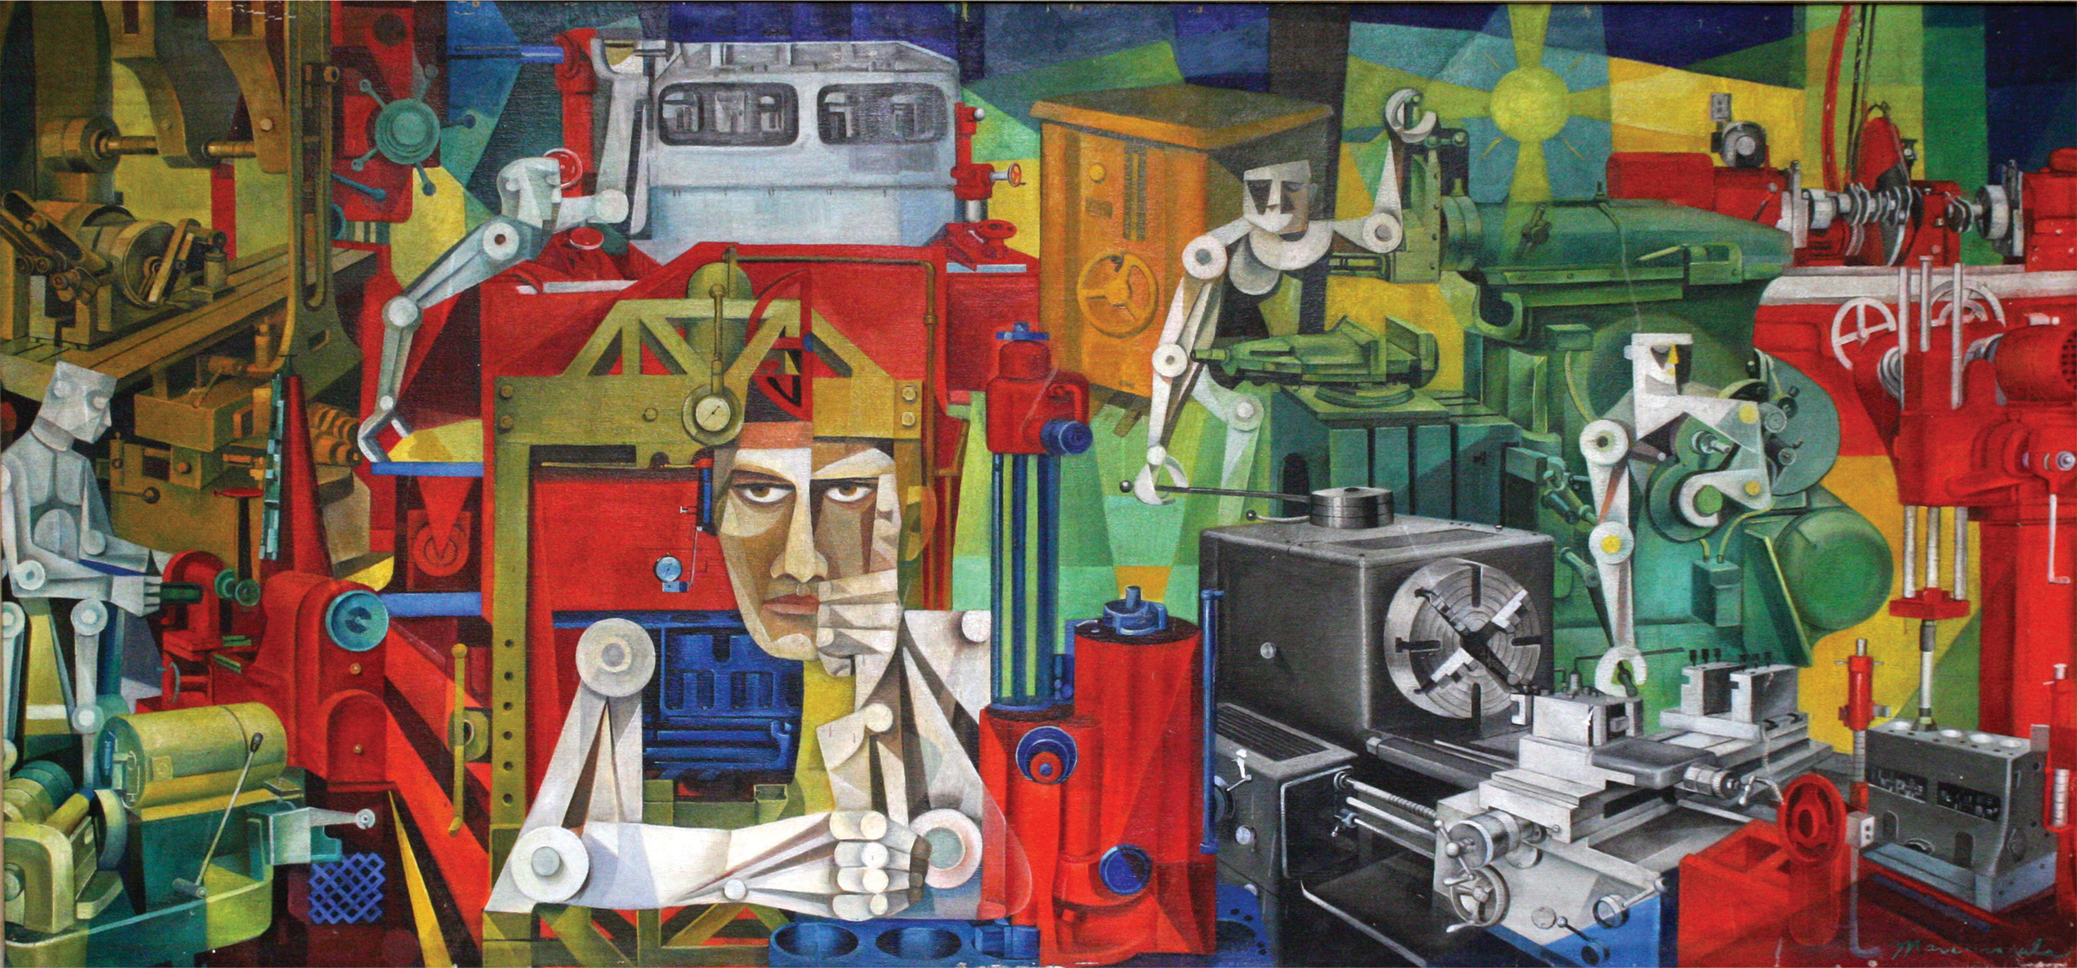 Vicente Mansala, Machinery, 1962